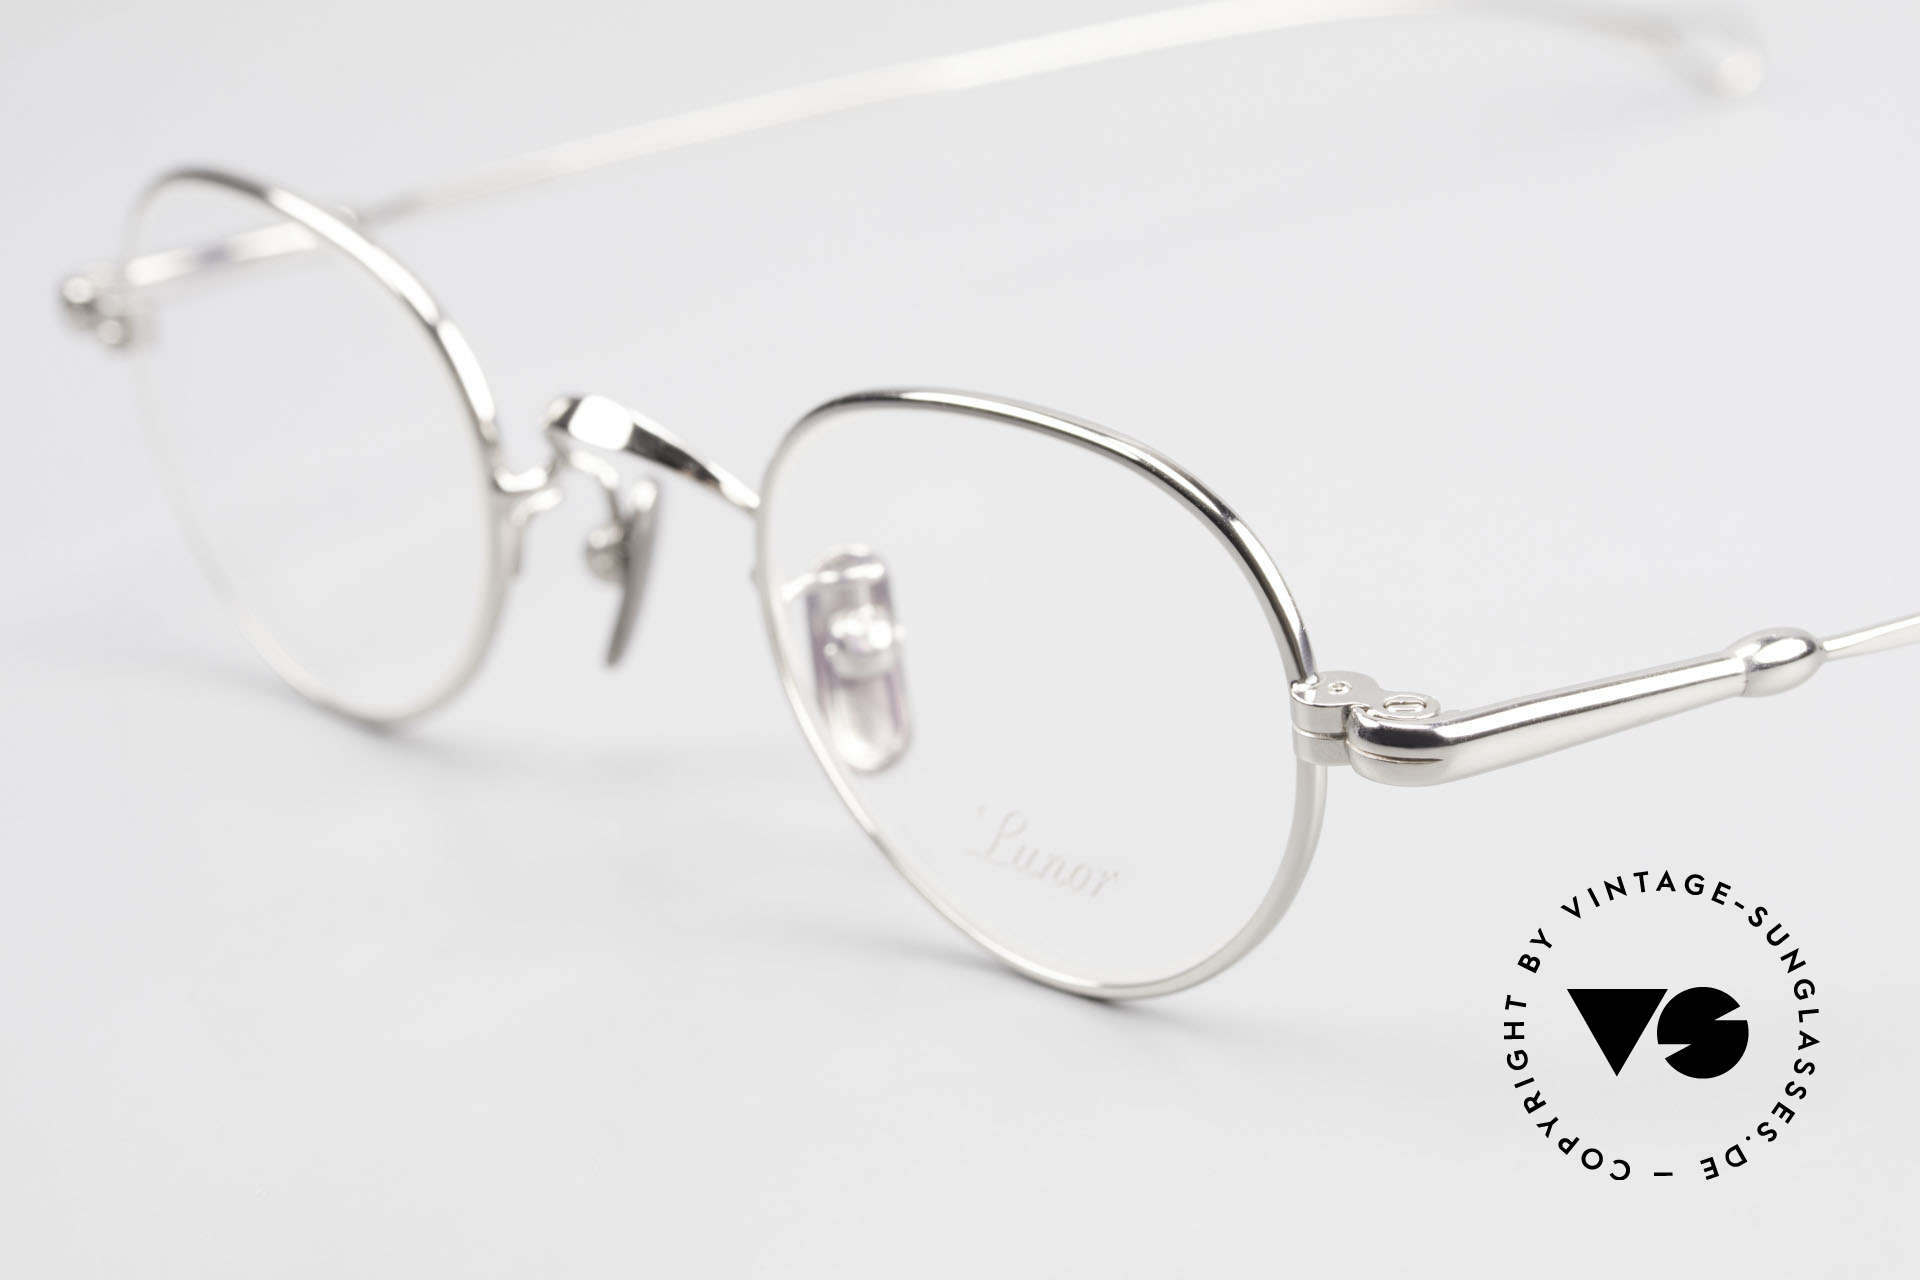 Lunor V 103 Timeless Lunor Eyeglass-Frame, from the 2011's collection, but in a well-known quality, Made for Men and Women